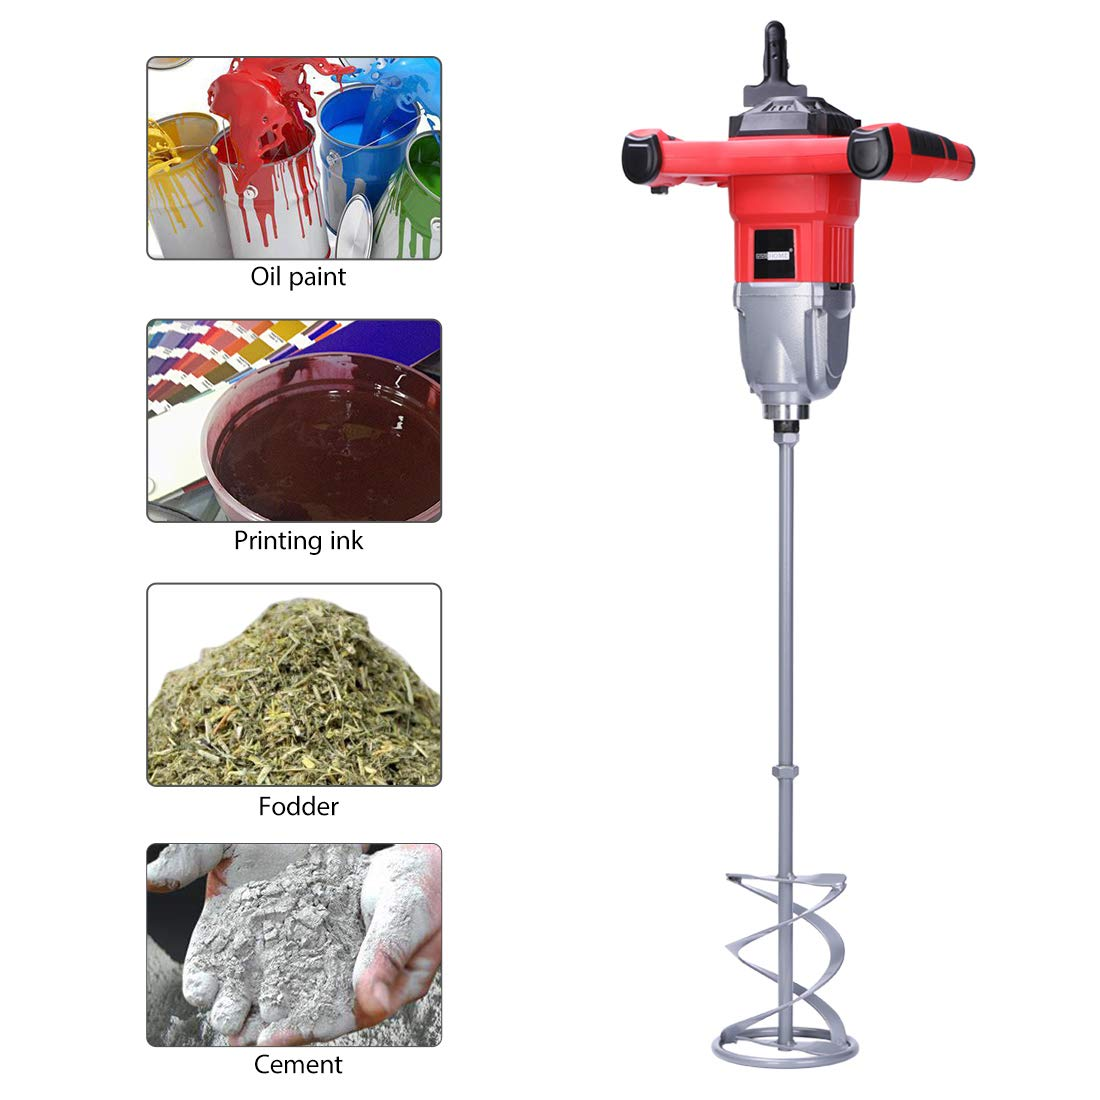 VIVOHOME 110V 1600W Electric Handheld Paint Cement Mortar Mixer Machine with 7 Adjustable Speed by VIVOHOME